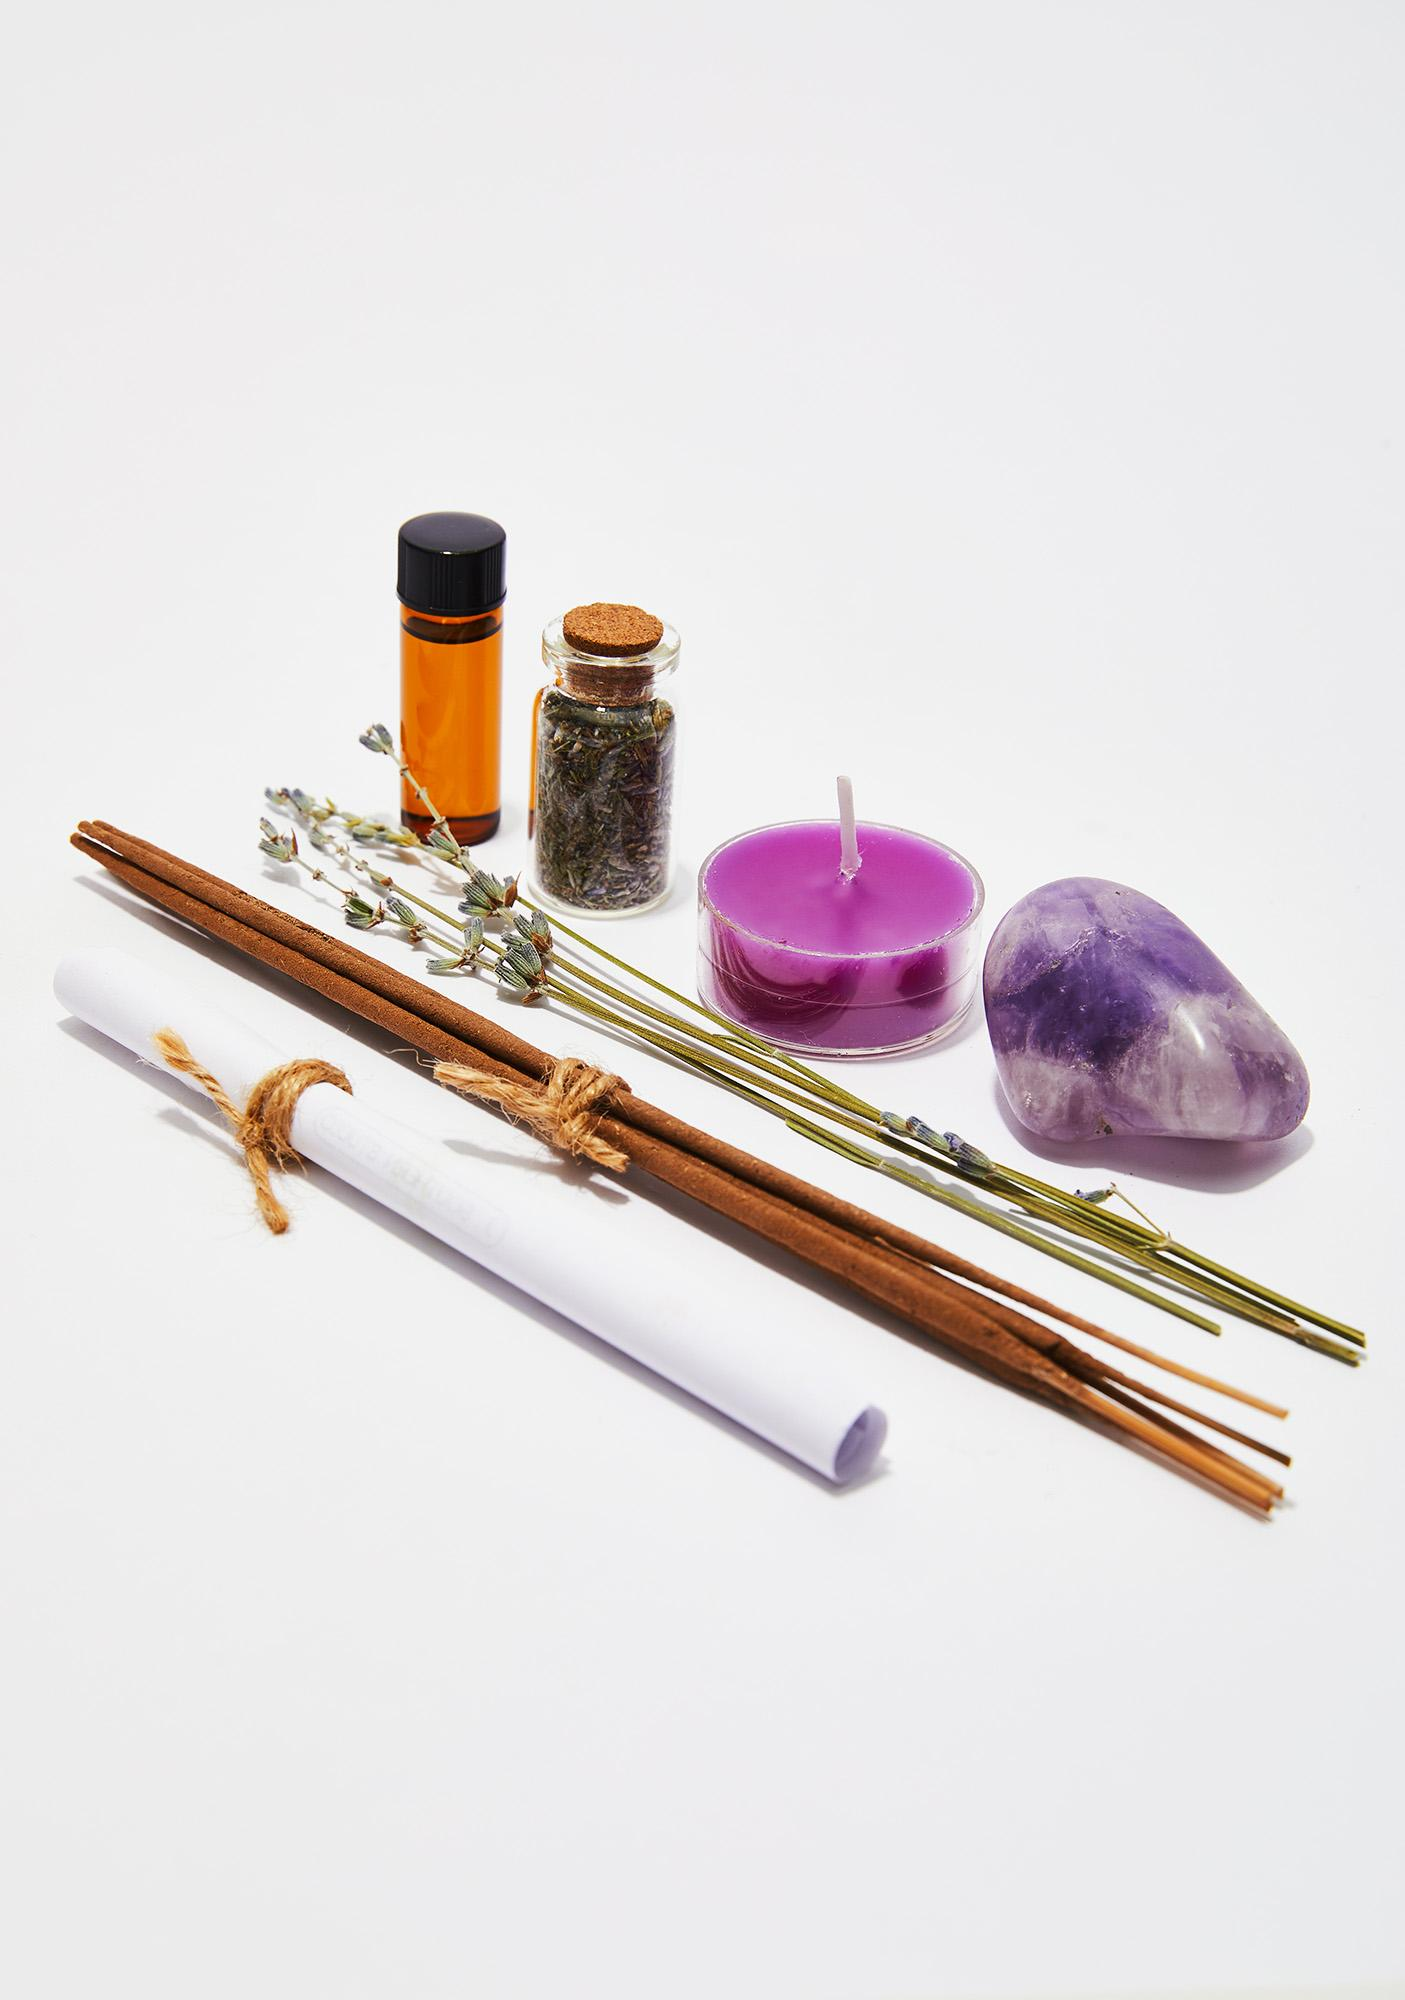 J. SOUTHERN STUDIO Chill, Dude Incense Making Ritual Kit